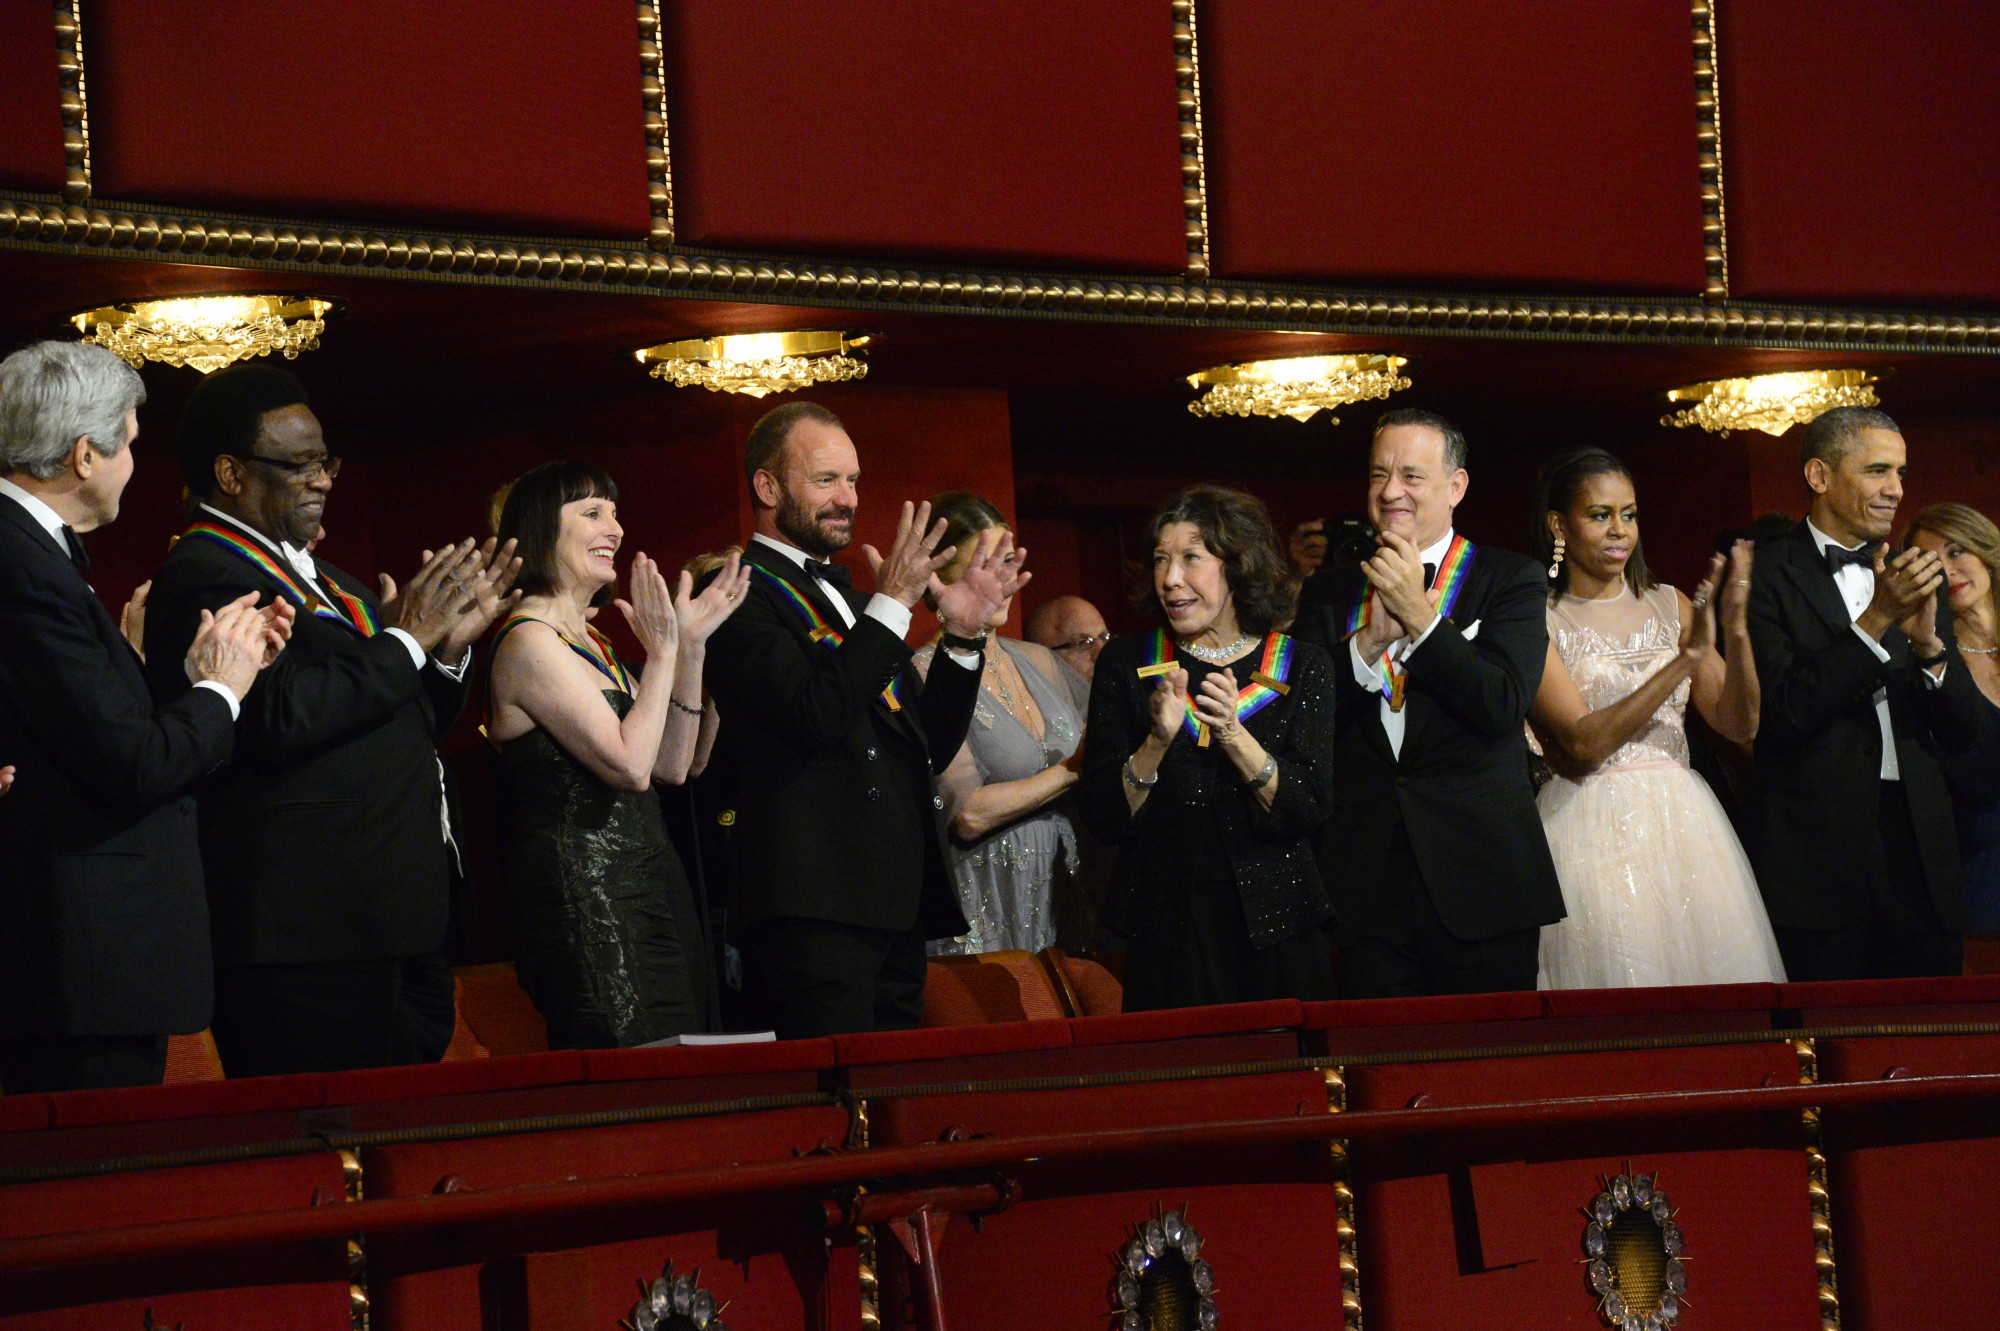 The Honorees at the 37th Annual Kennedy Center Honors